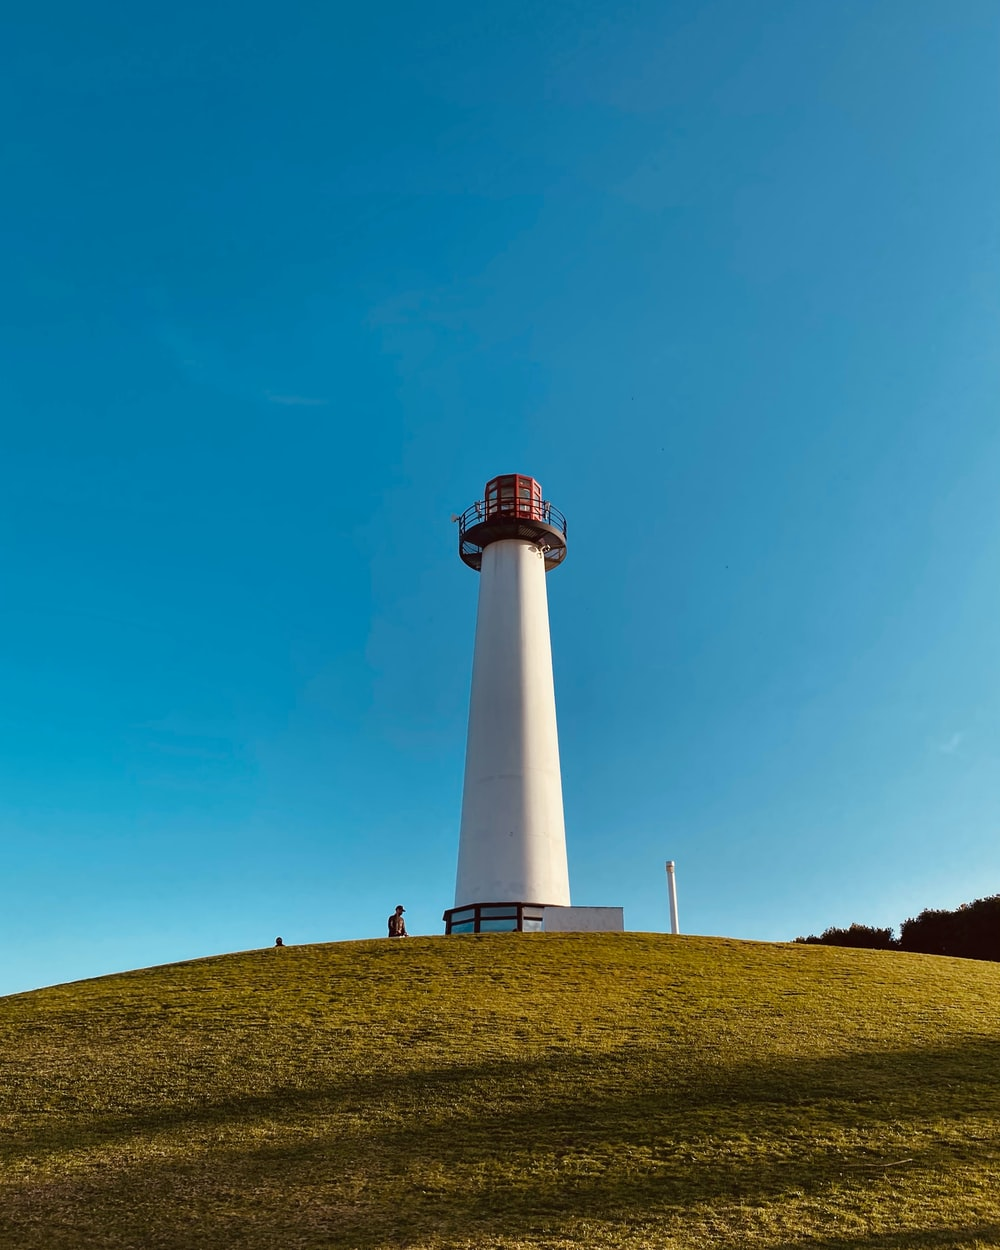 white and red lighthouse on green grass field under blue sky during daytime